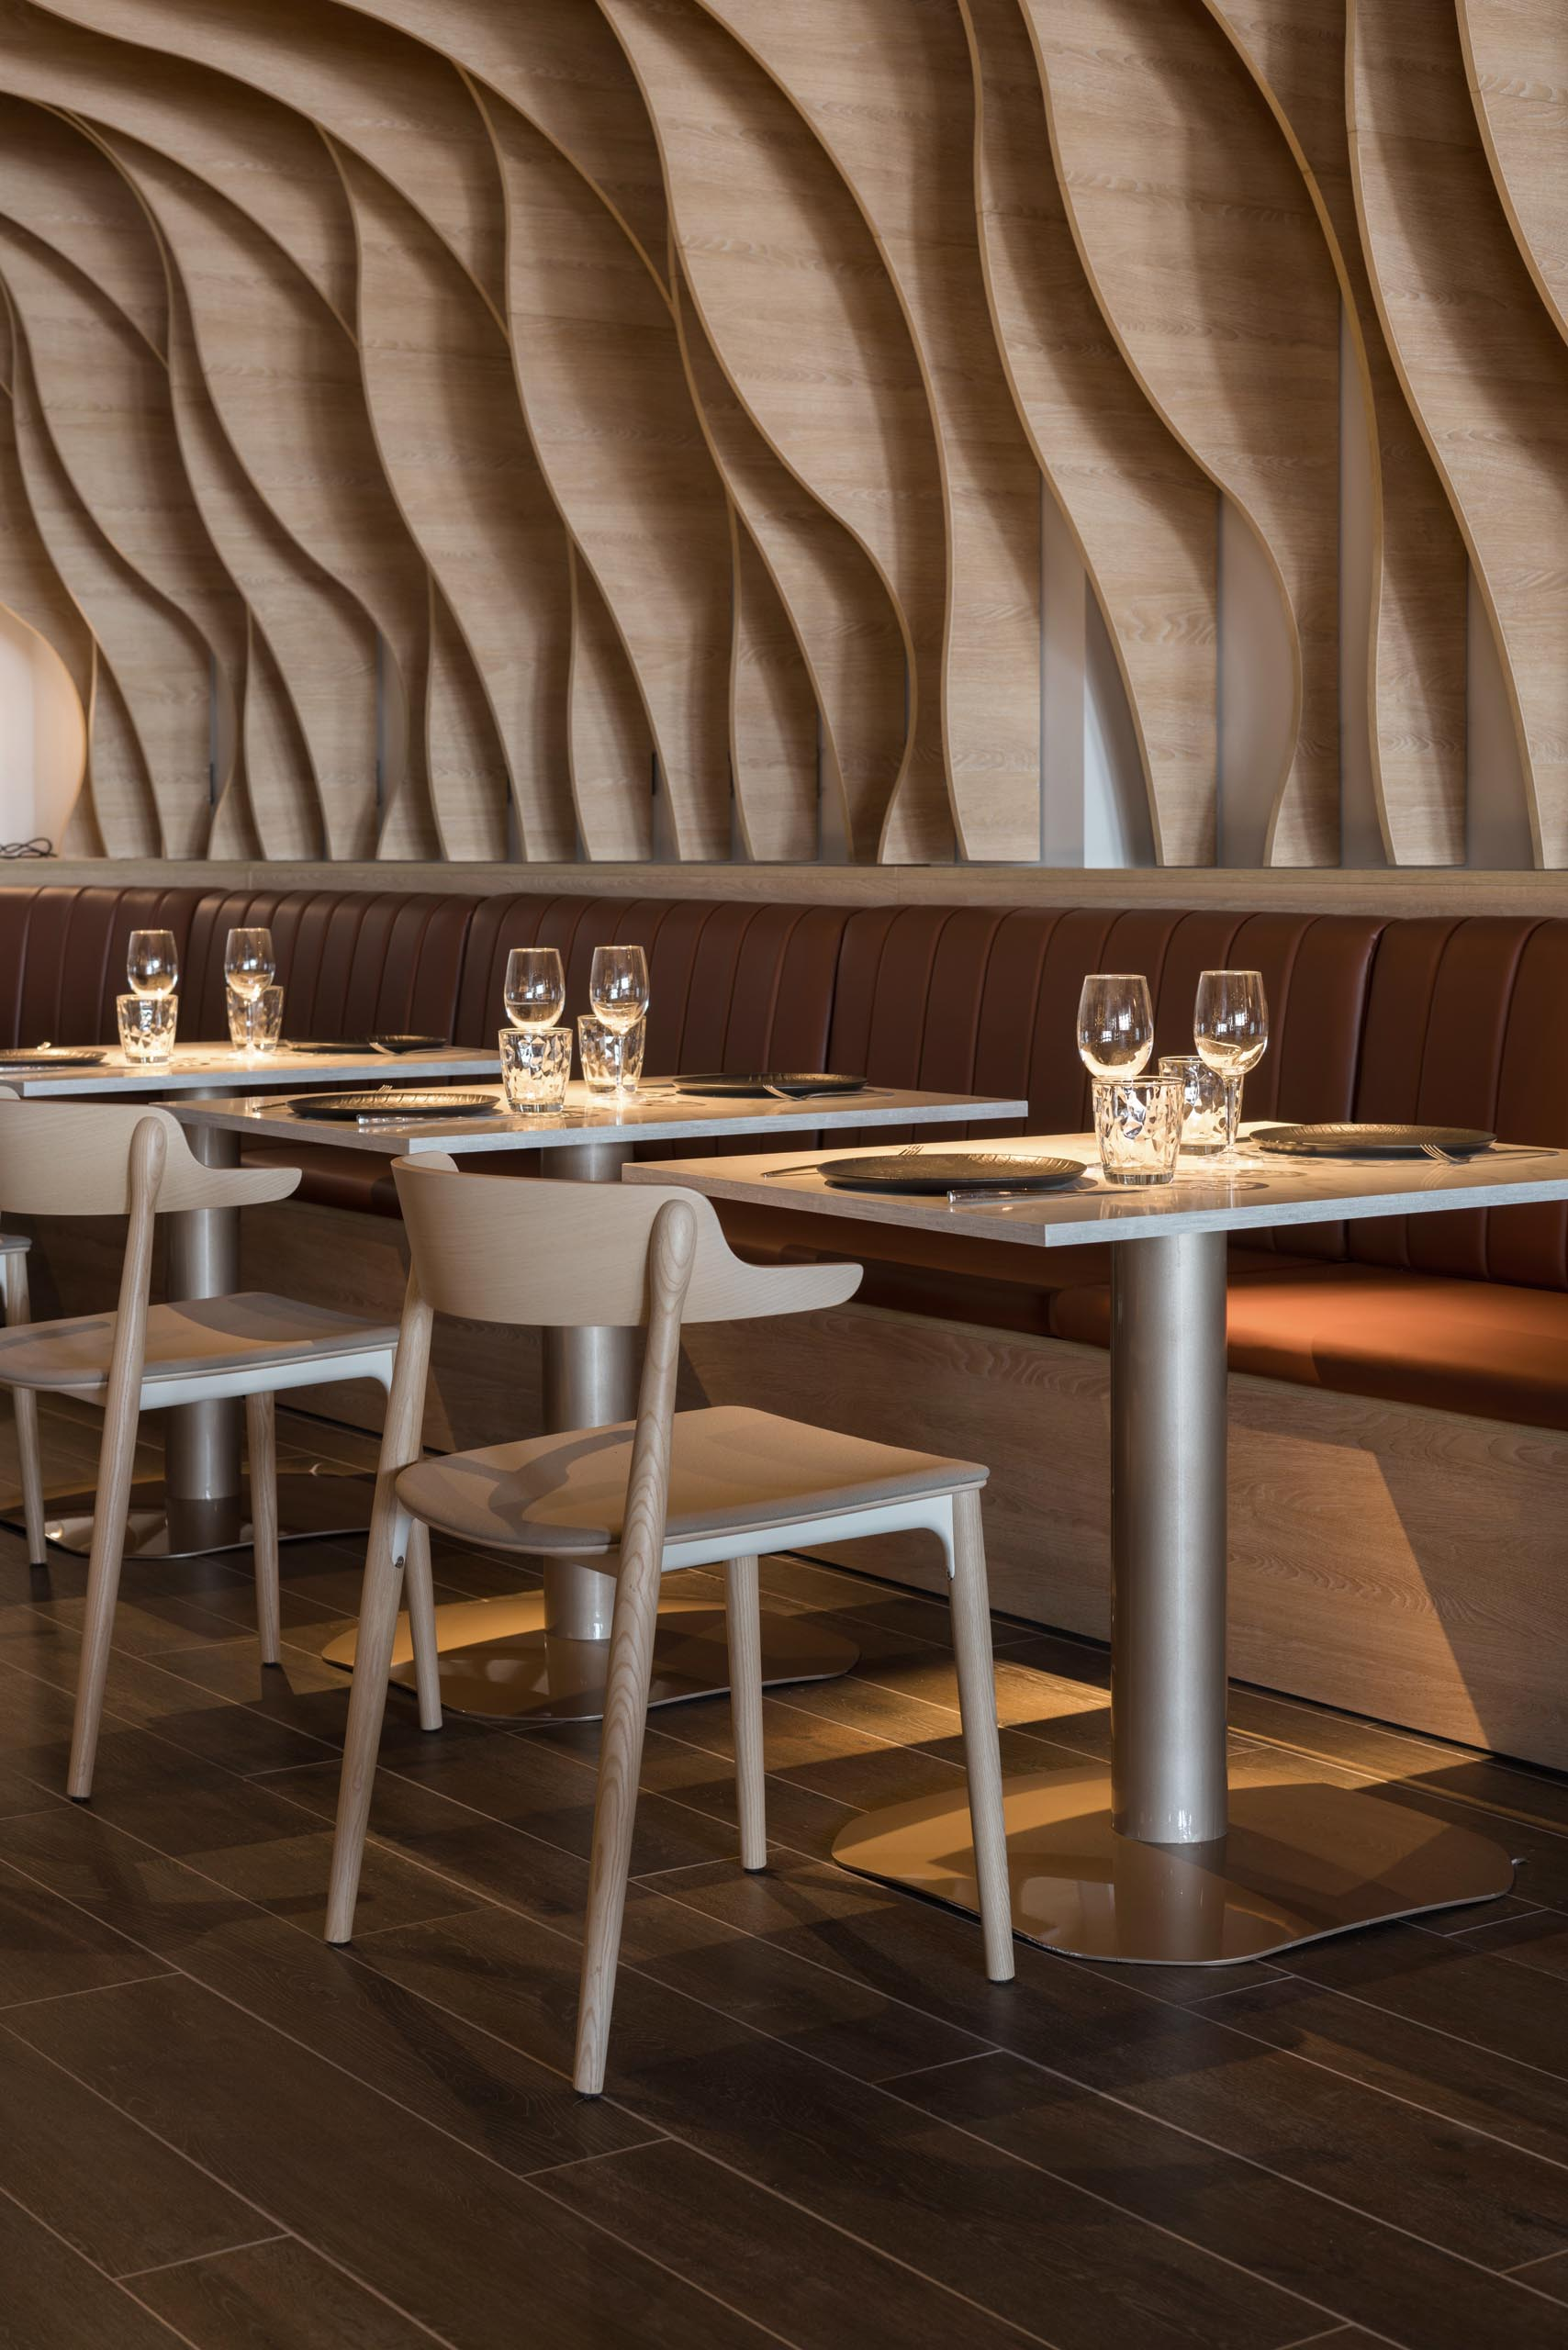 Sculptural wood fins cover the walls and ceiling, and match the surrounding furniture in a restaurant.